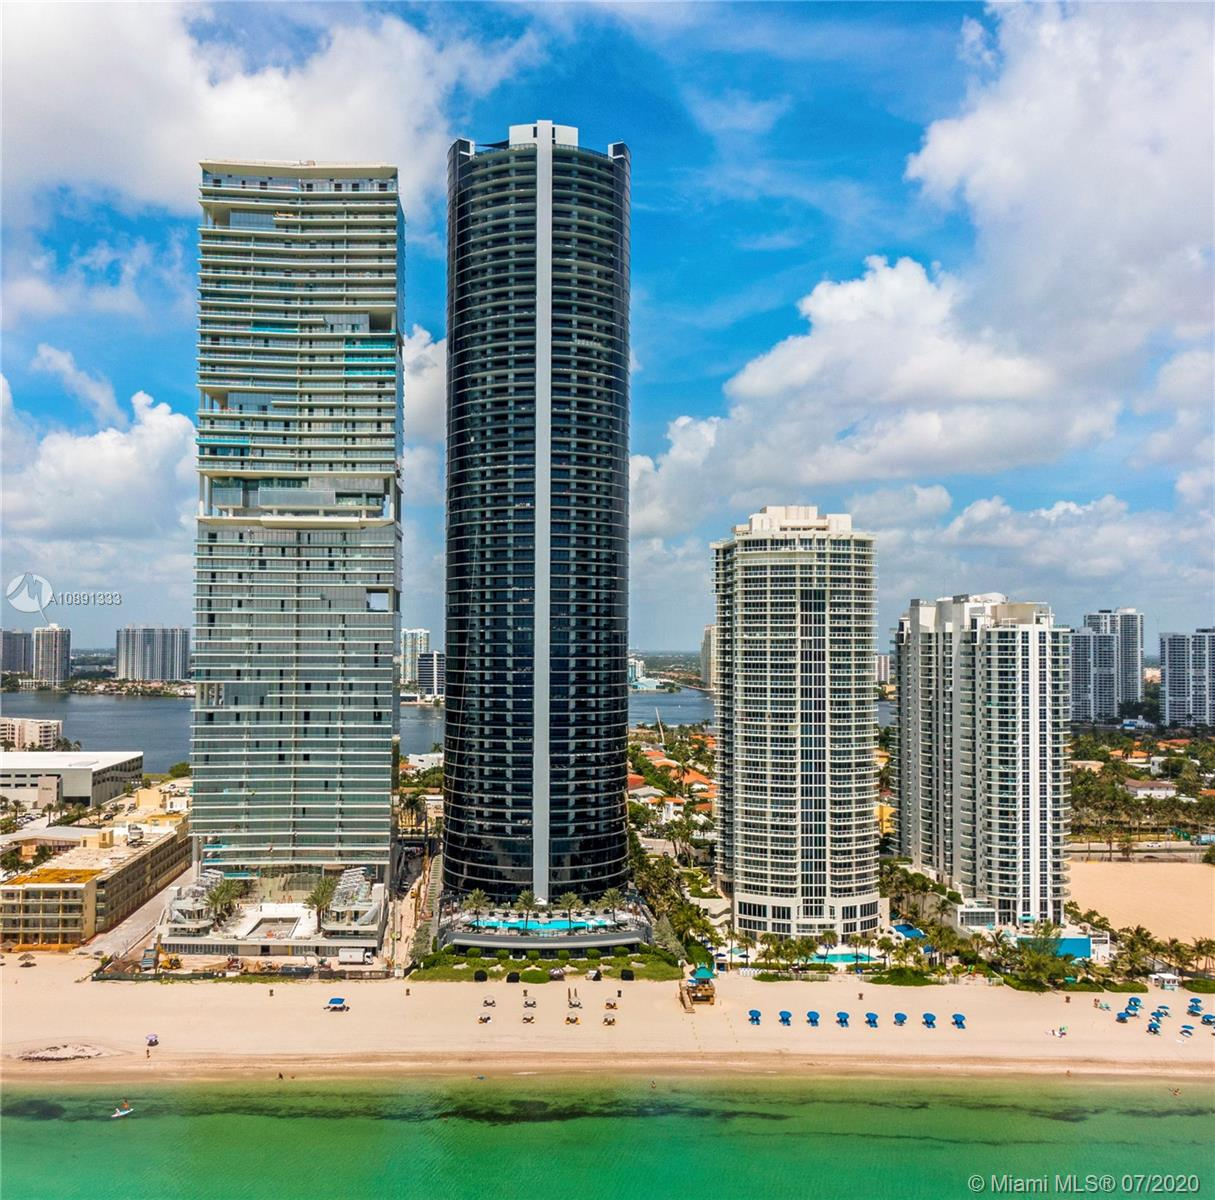 18555 Collins Ave, Unit #4405 Luxury Real Estate